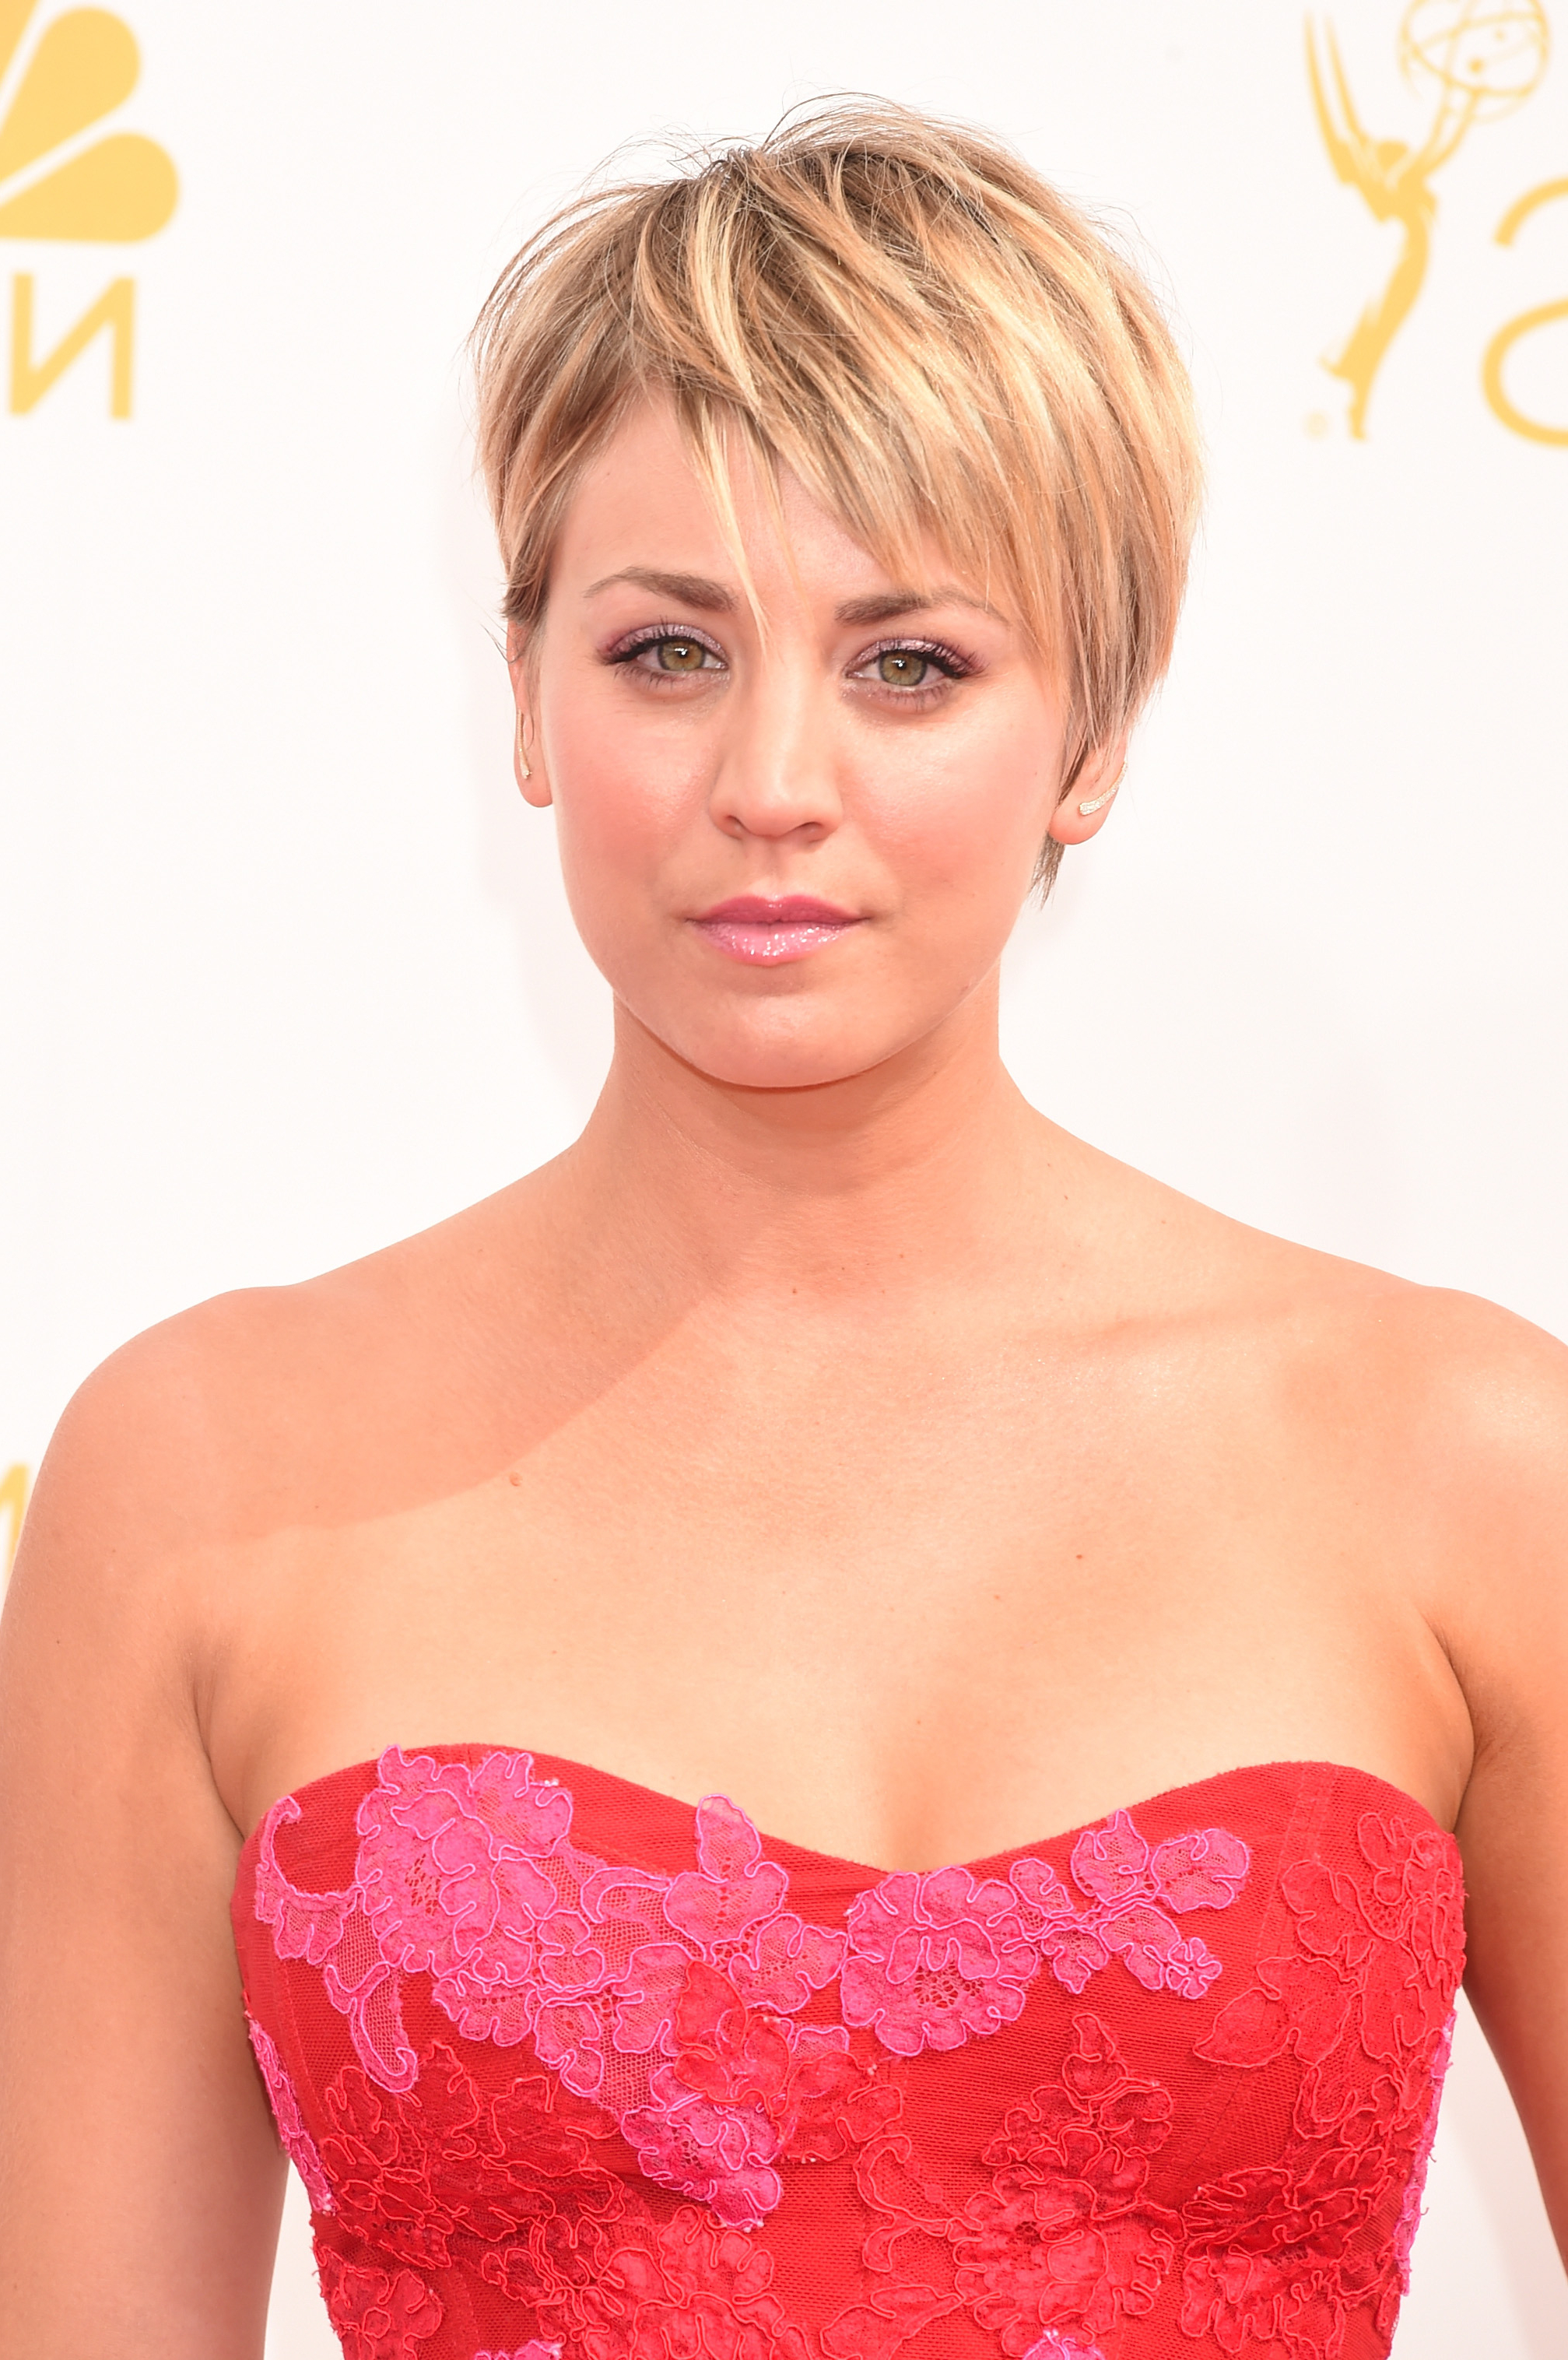 Kaley Cuoco Debuts Pink Hair, Because The Girly Hue Is Totally The Throughout Kaley Cuoco New Short Haircuts (View 18 of 25)